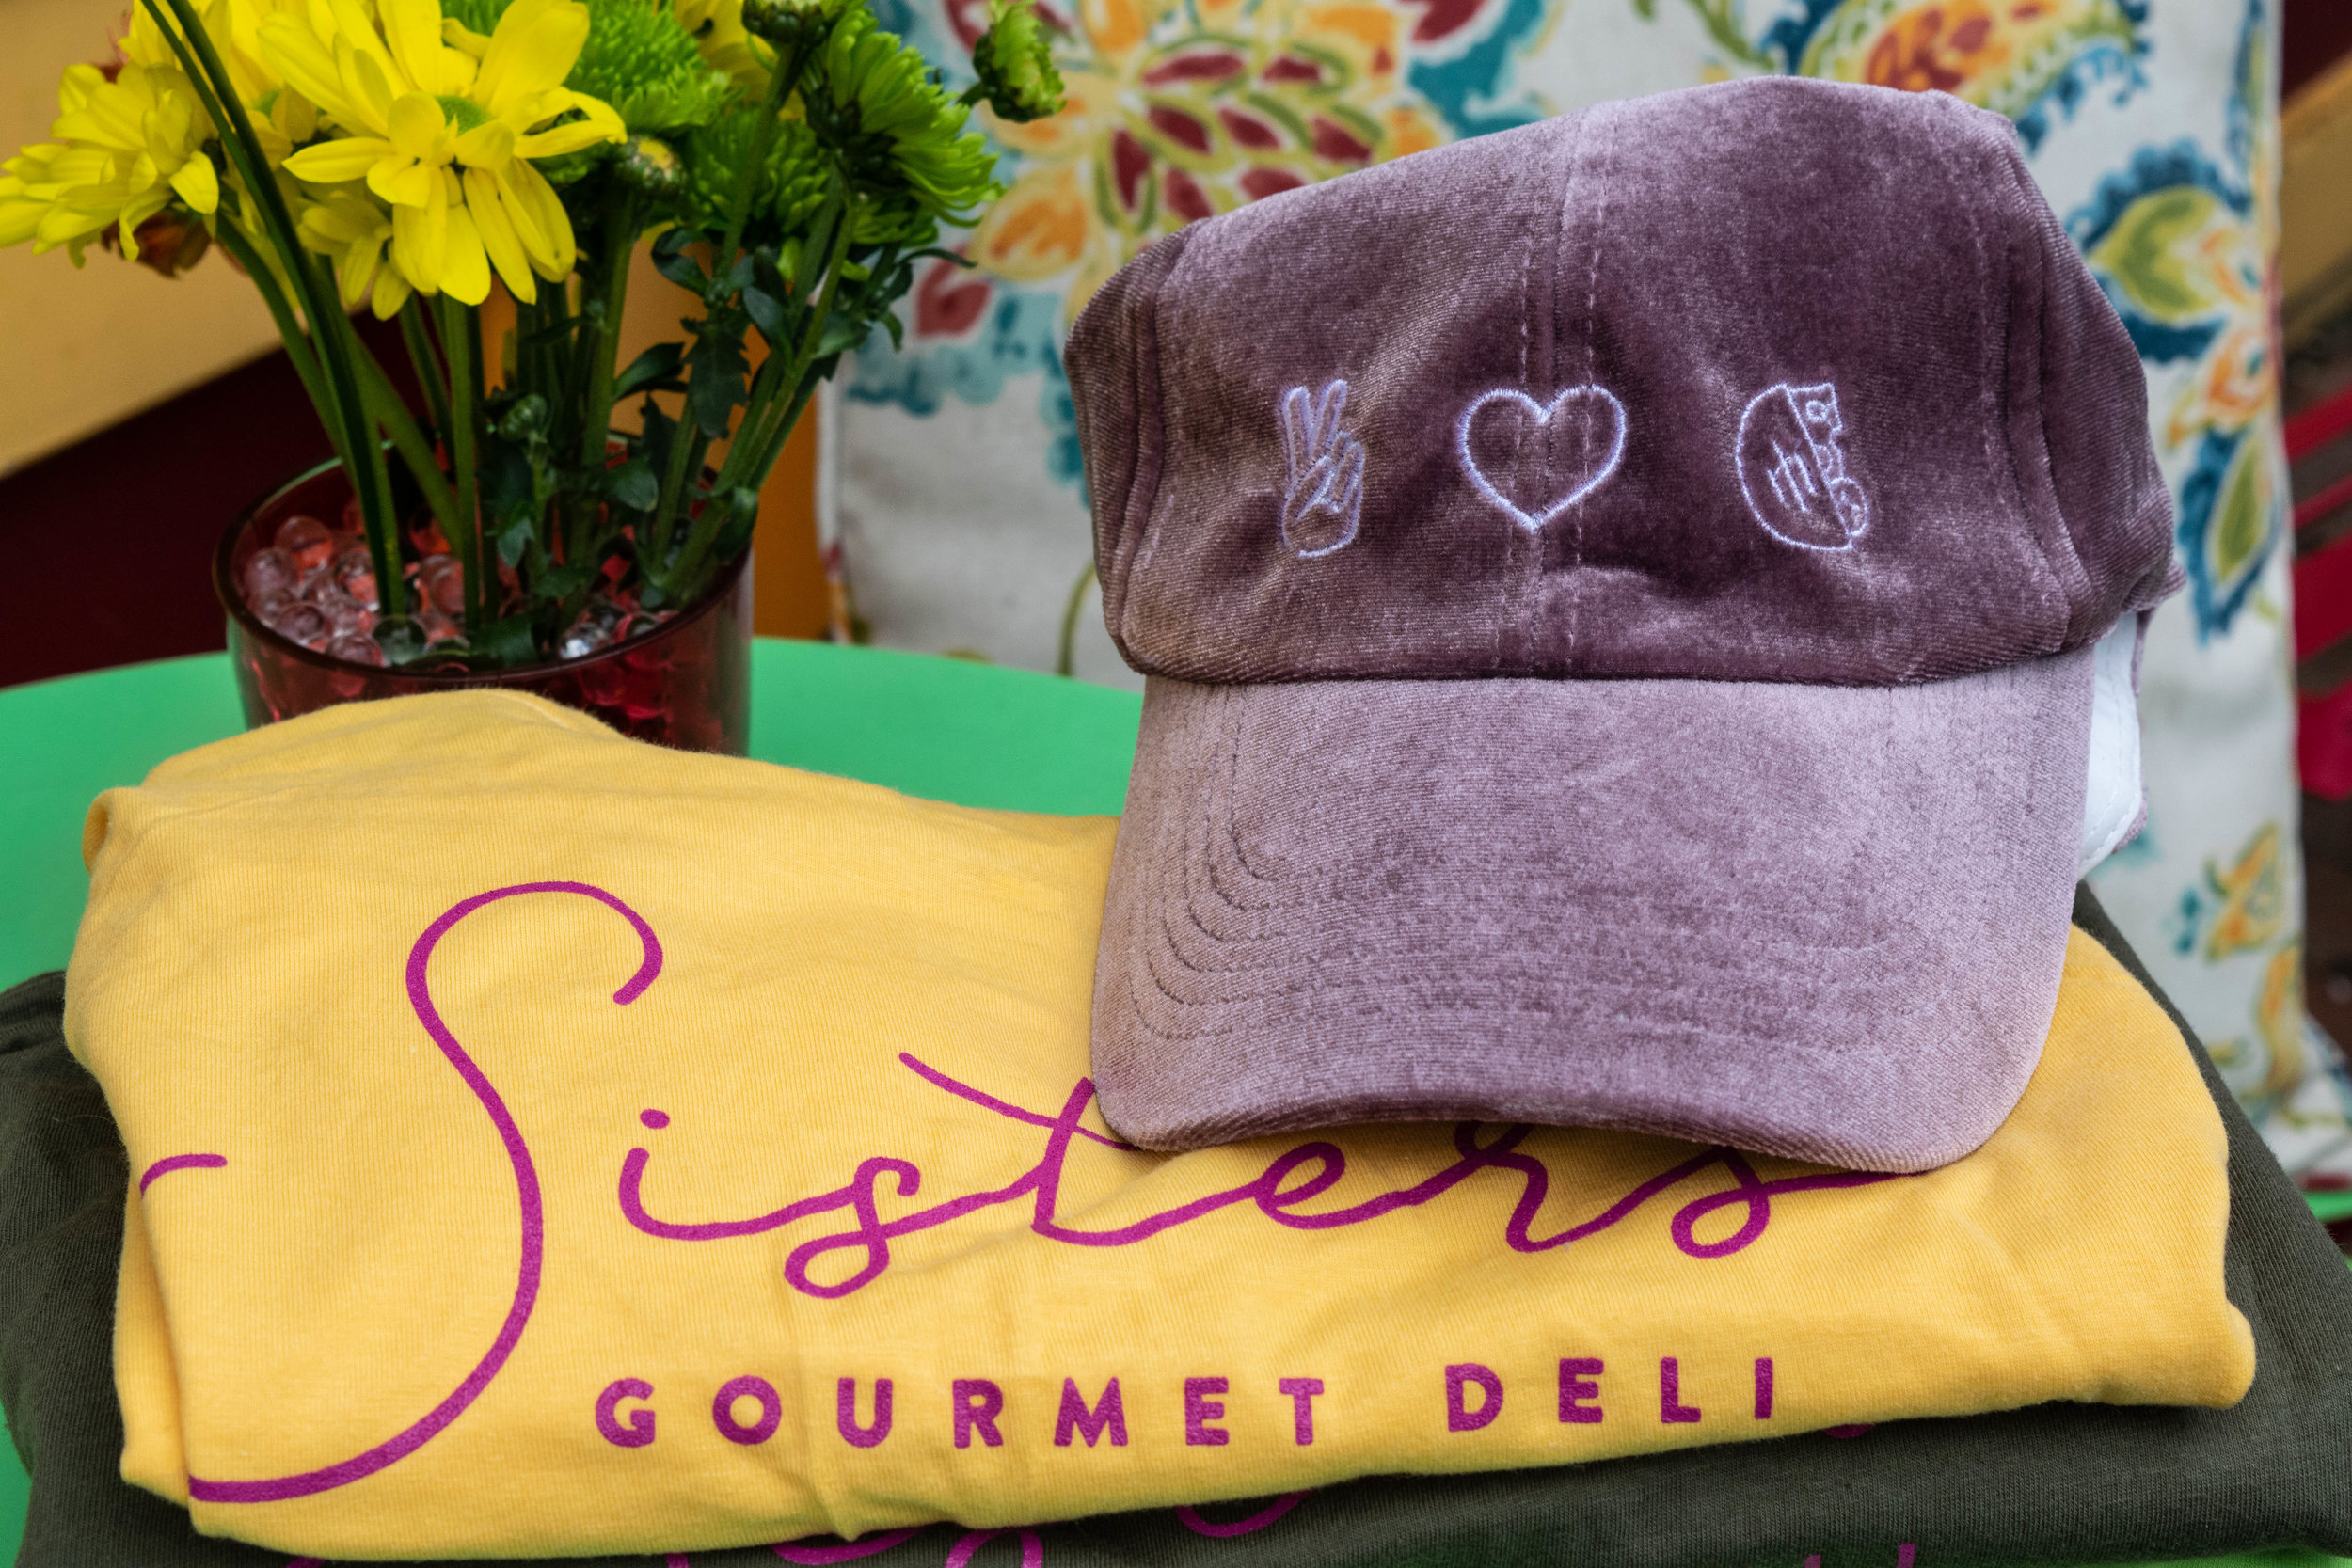 Sisters Swag - Stop in the deli to grab your Sisters swag. Plenty of colors and styles to choose from!